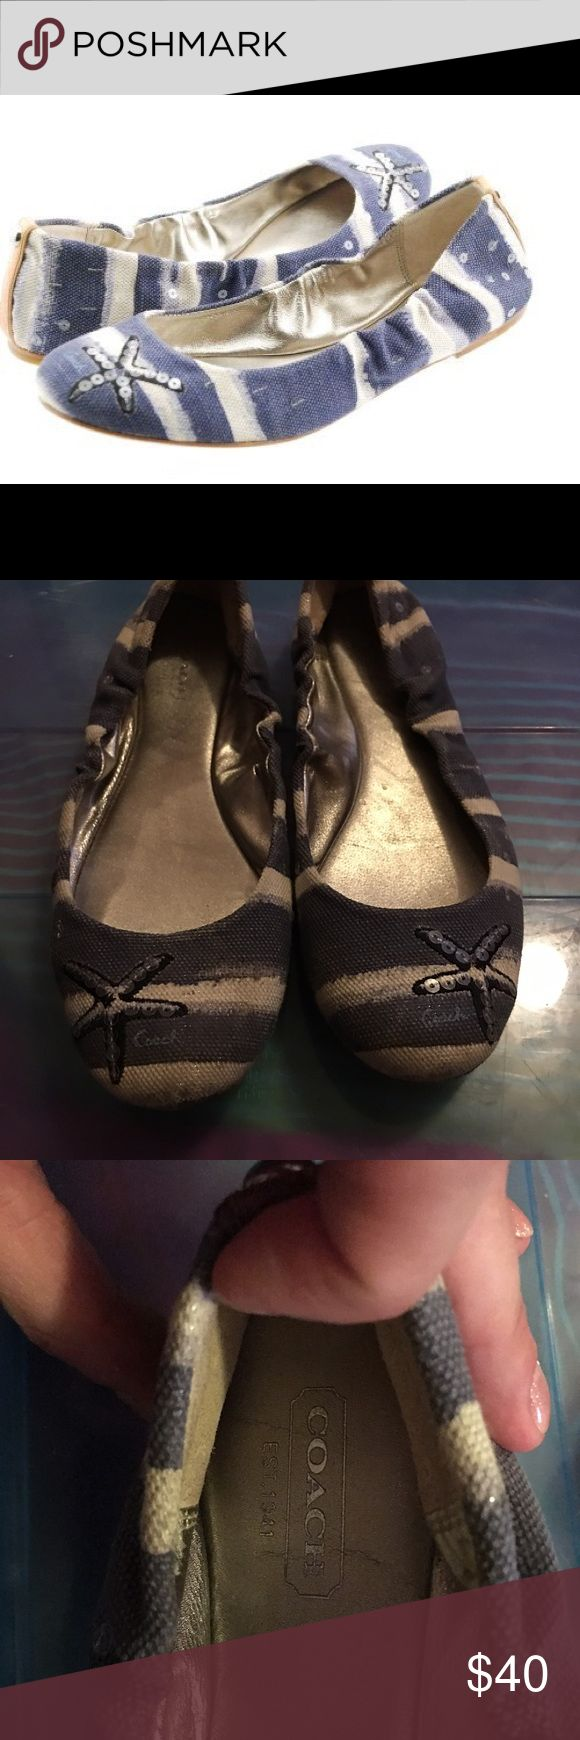 Coach Addy starfish striped canvas ballet flats Great condition Coach flats that are perfect for summer! no major scuffing, but they do show a little bit of wear. I wore them about 5x. Coach Shoes Flats & Loafers